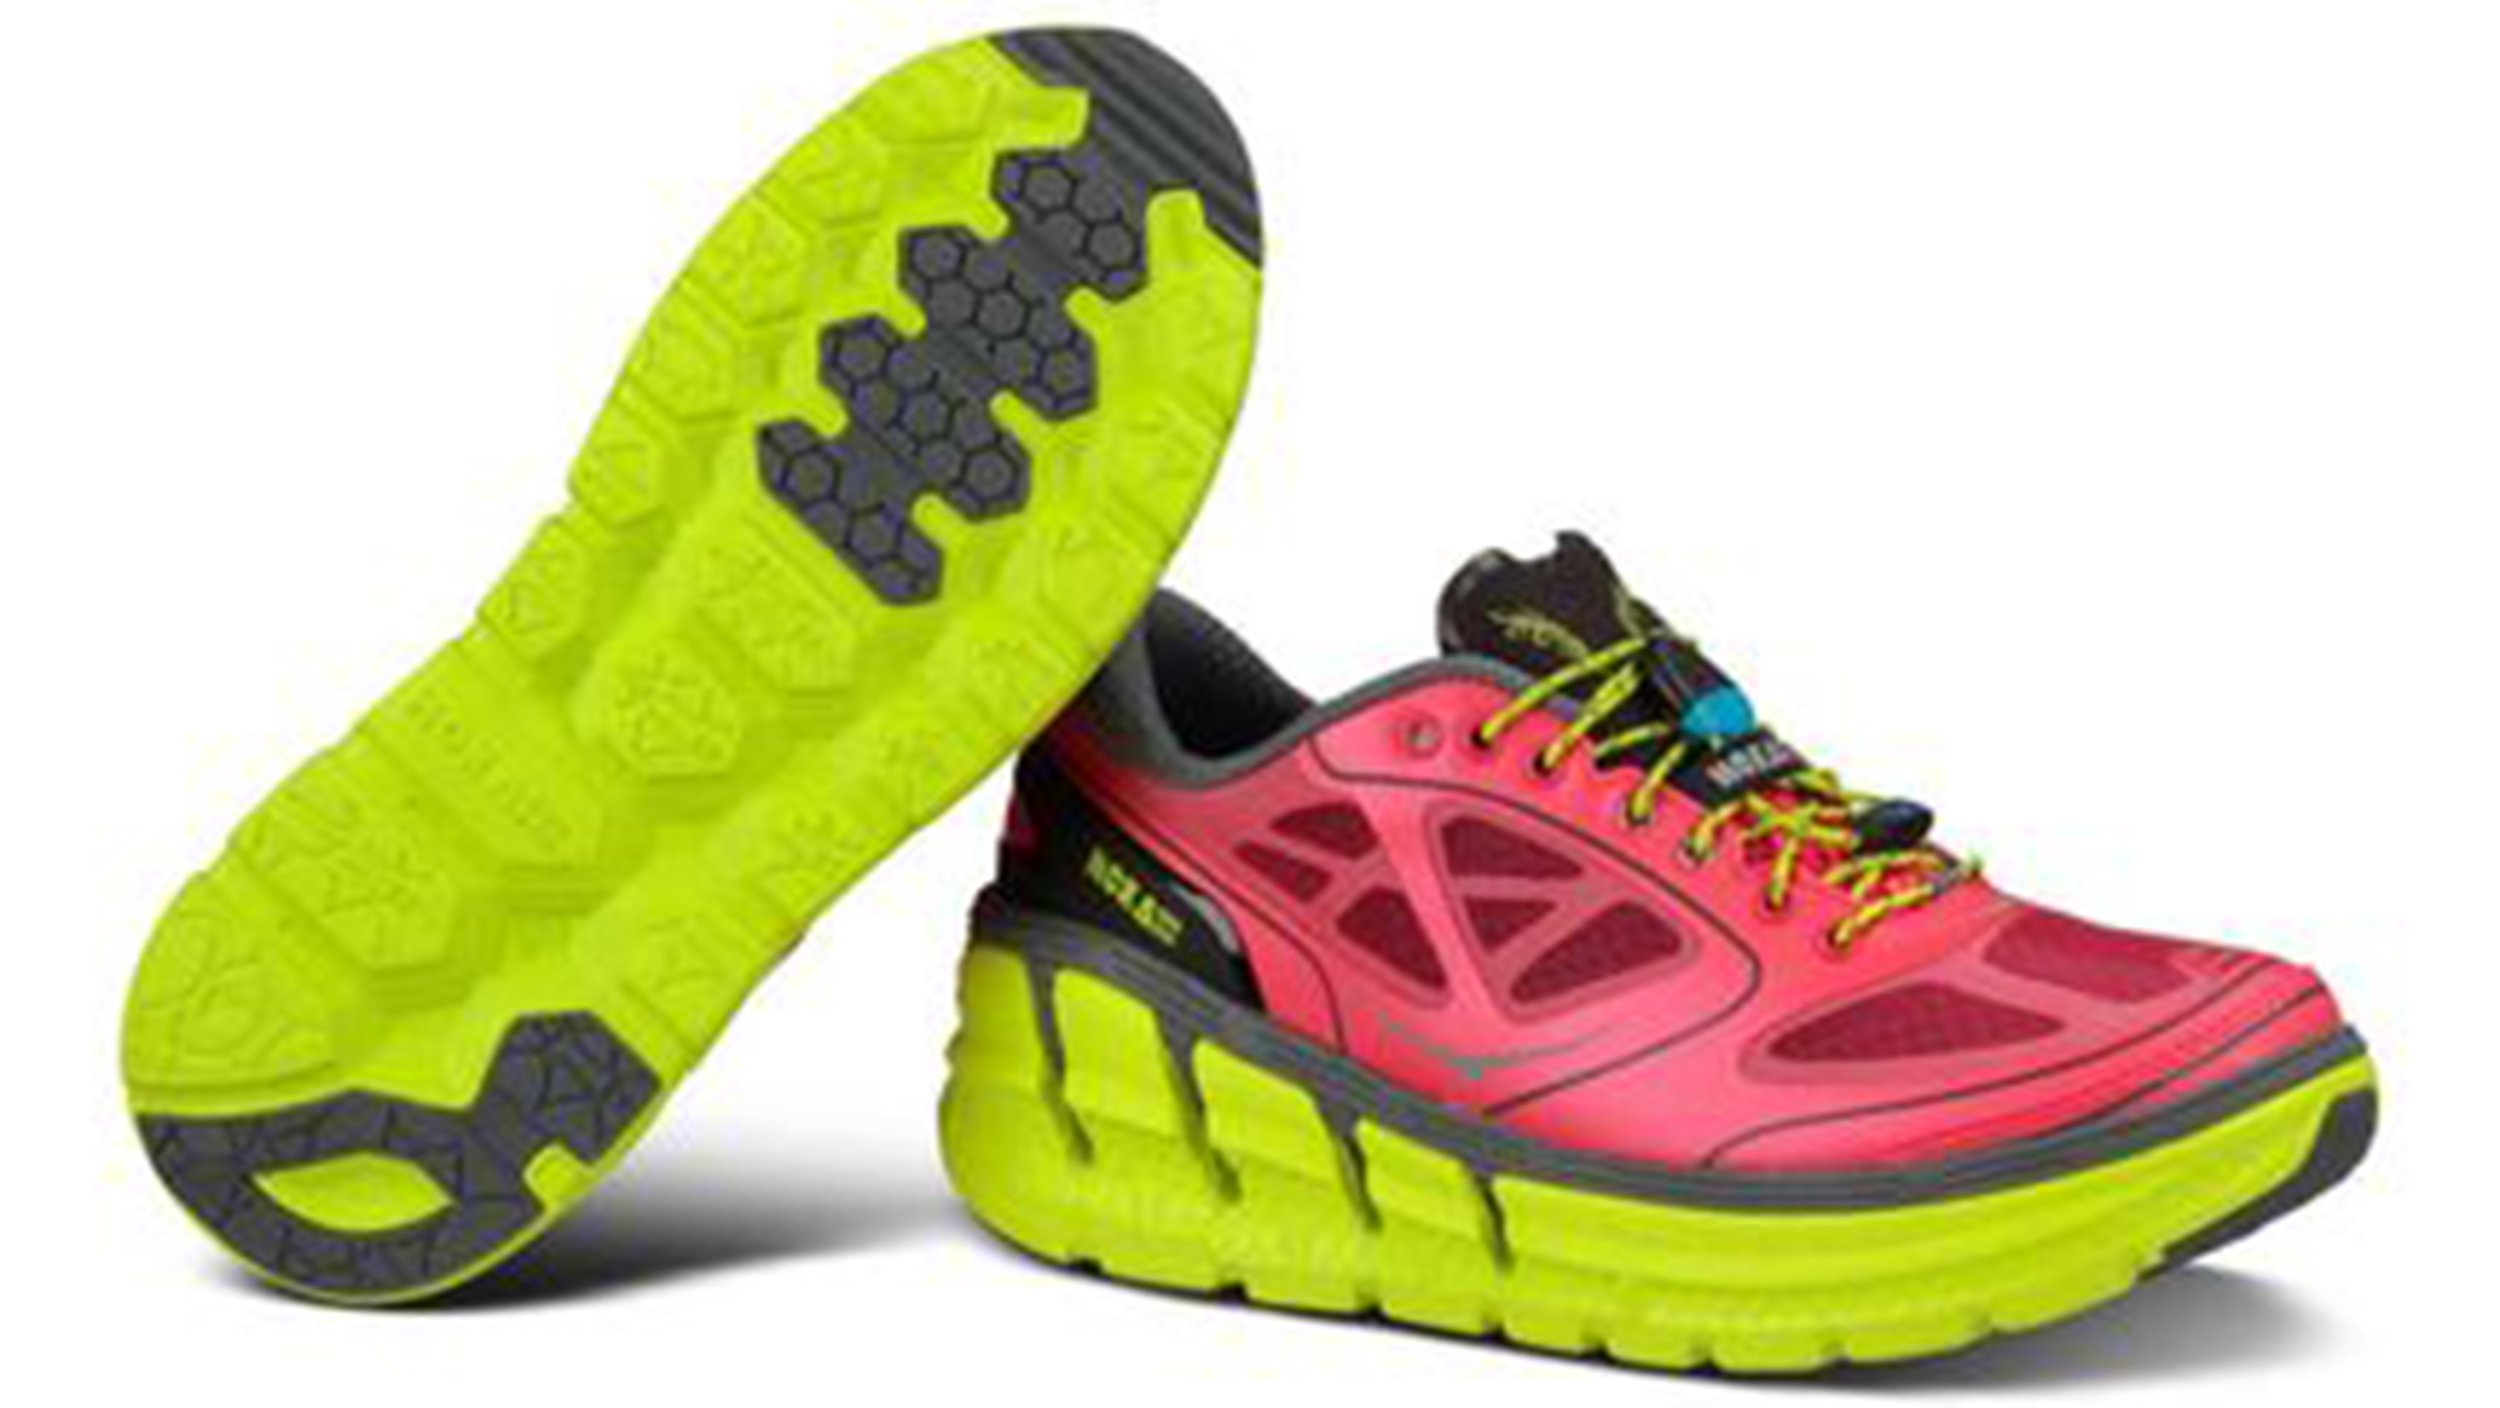 Fat Soled Shoes Are The New Barefoot Runners Can They Protect Aging Joints